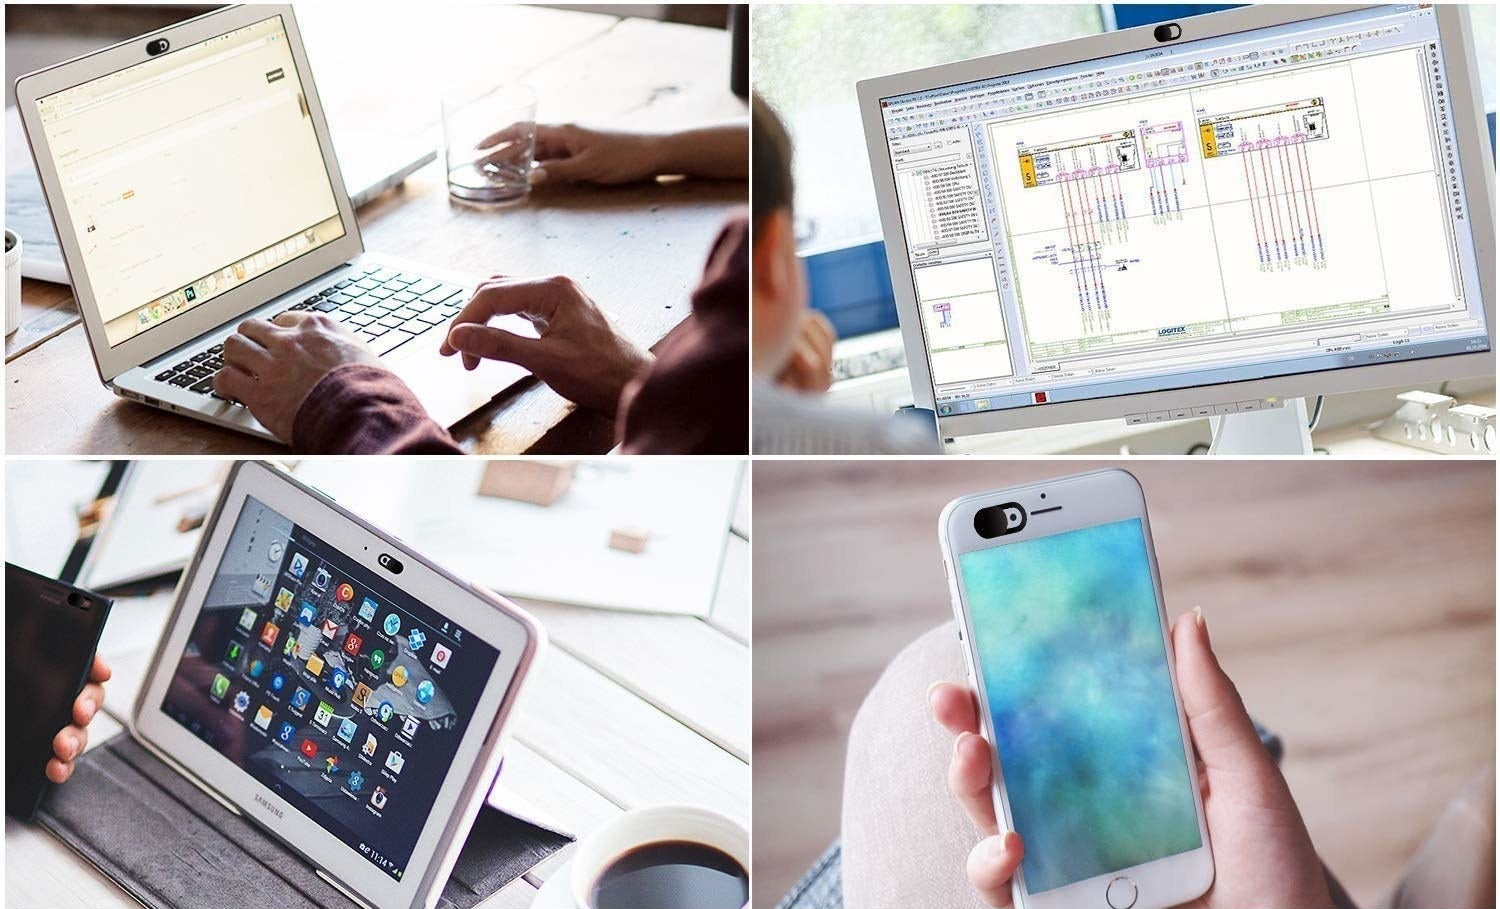 Various devices you can use the webcam slider on, such as an iPhone, laptop, iPad.